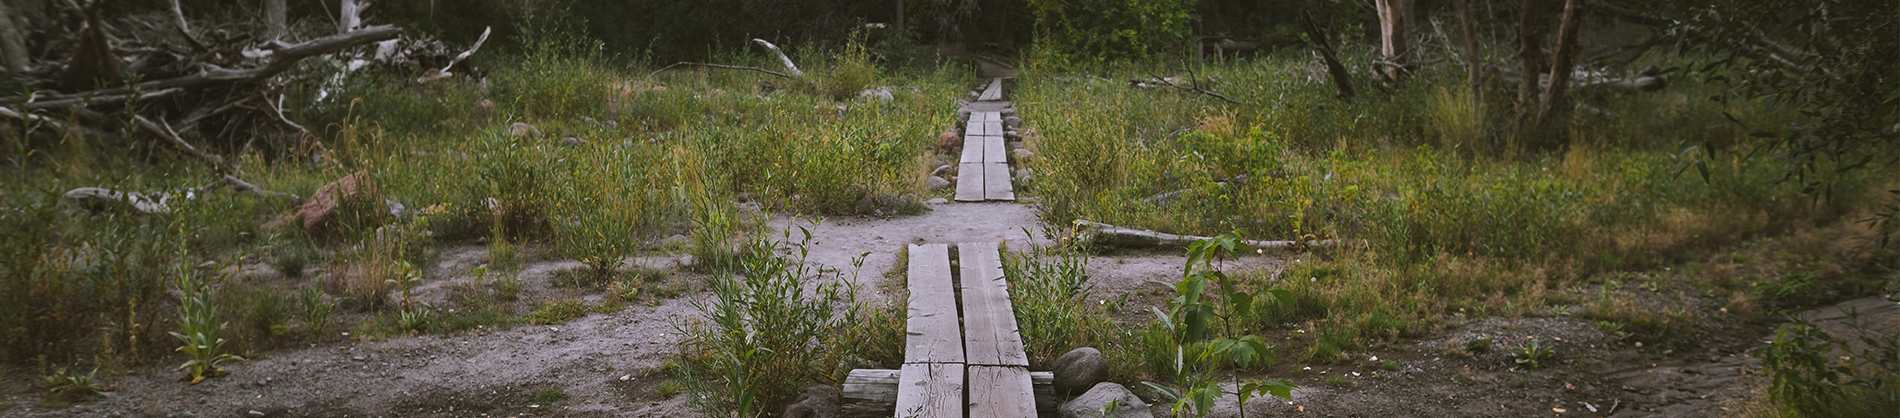 Abandoned grass area with wooden plants on the ground making a path